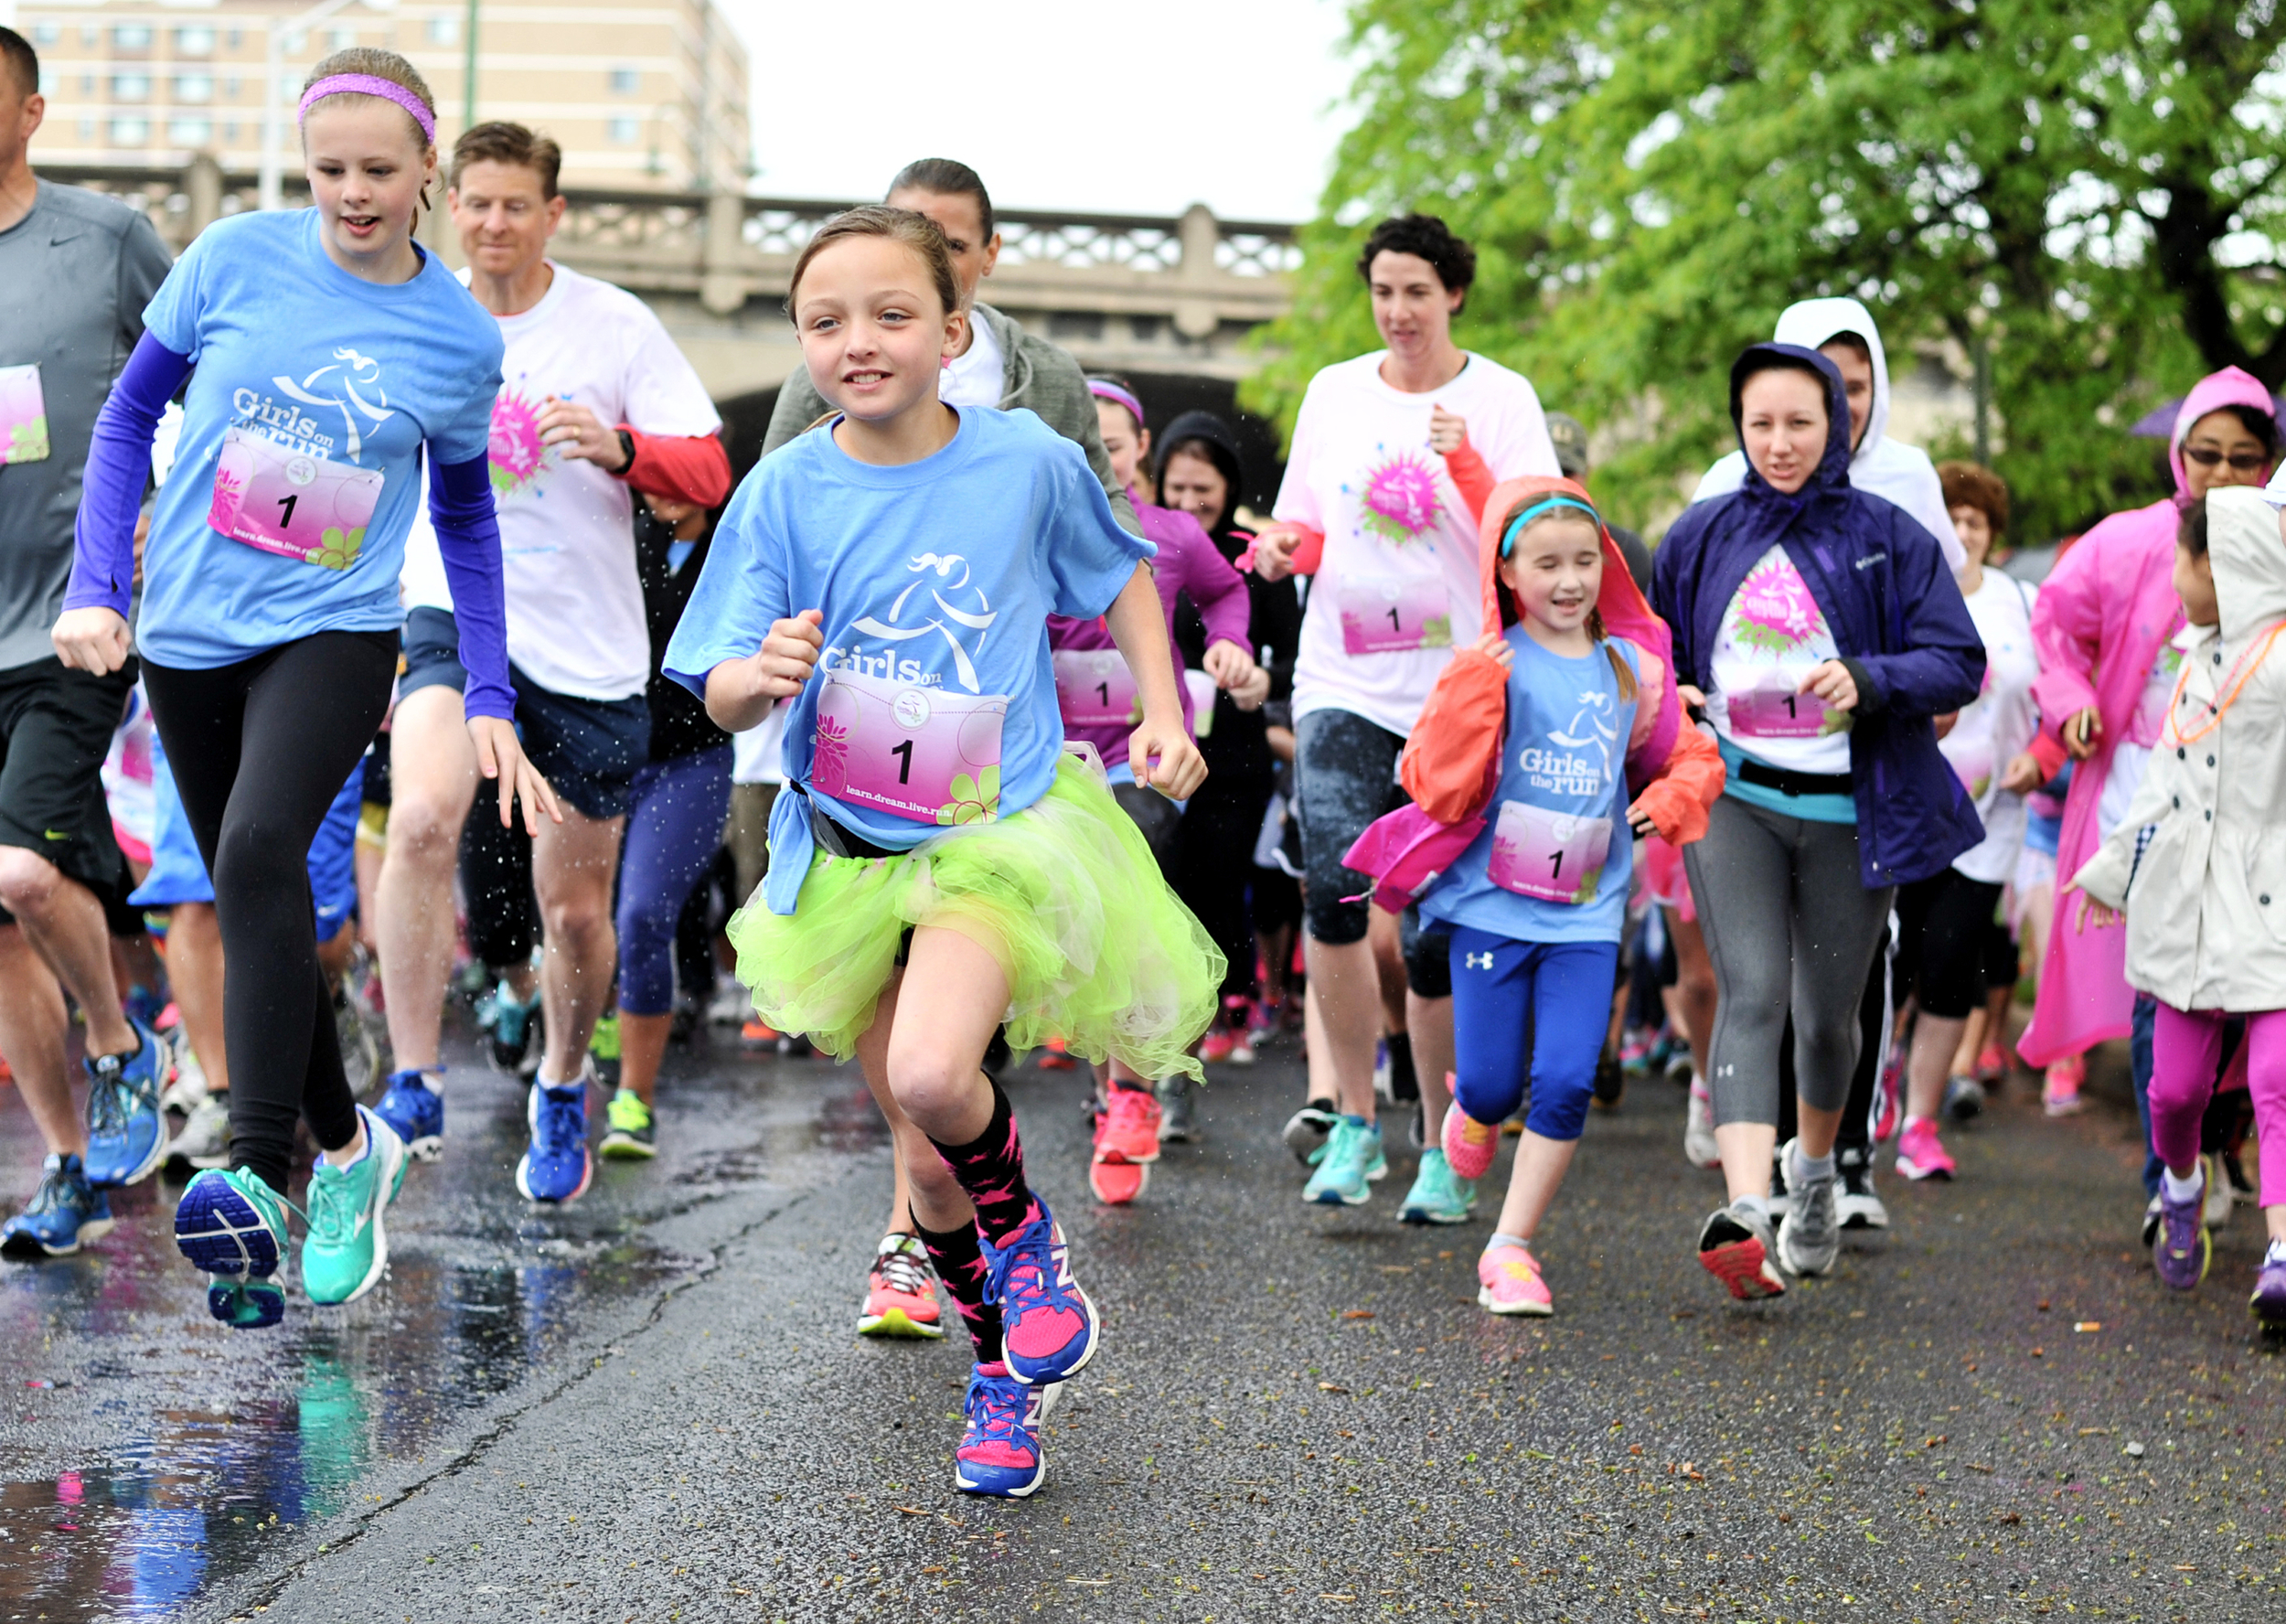 Catherine Harentz, 11, takes off during the start of the Girls on the Run race at Reading Area Community College on May 22, 2016. Harentz would go on to finish first. (Reading Eagle: Sarah Stier)